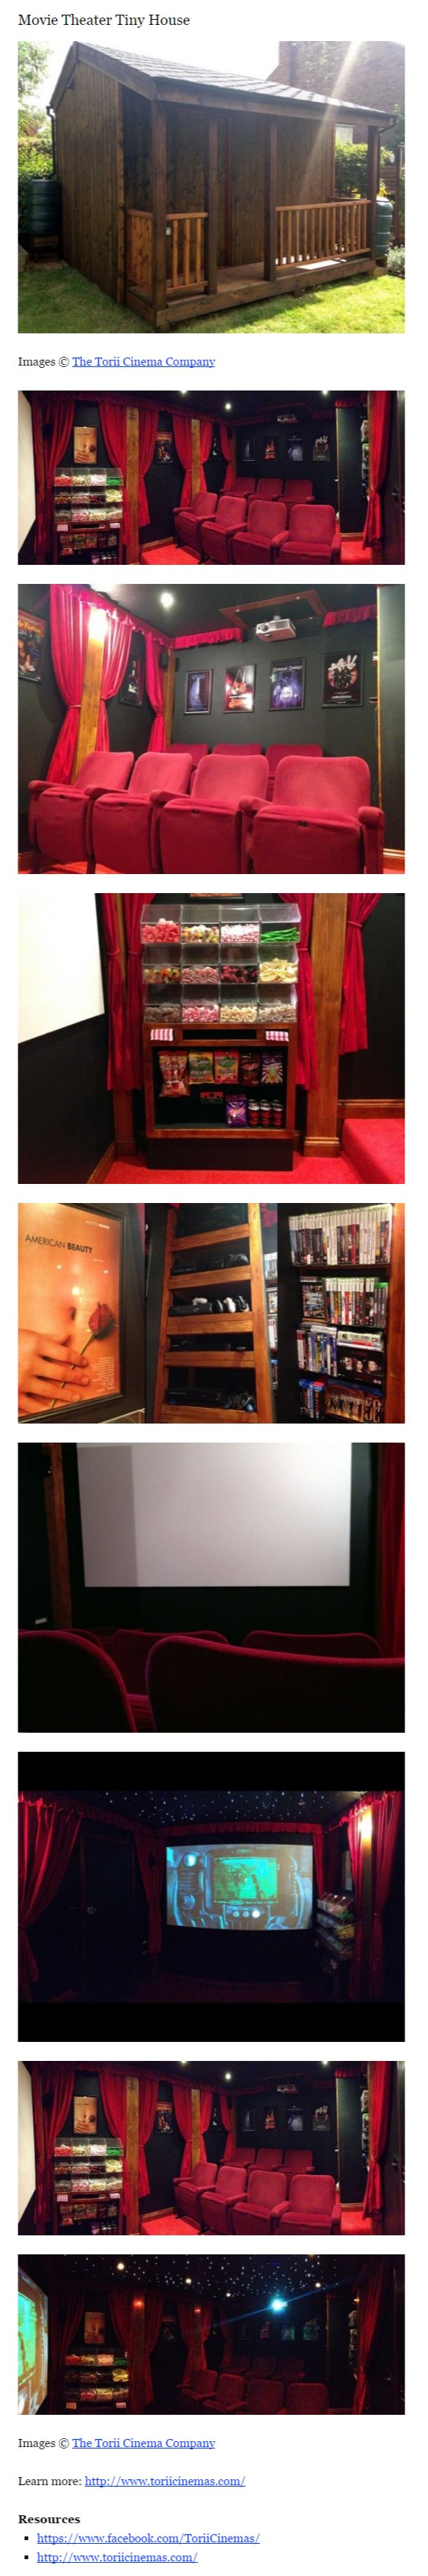 I MUST BUILD ONE!! Movie Theater Tiny House on OCTOBER 31, 2015 Read more at http://tinyhousetalk.com/movie-theater-tiny-house/#4TVIAw2sLpeEC7Tm.99